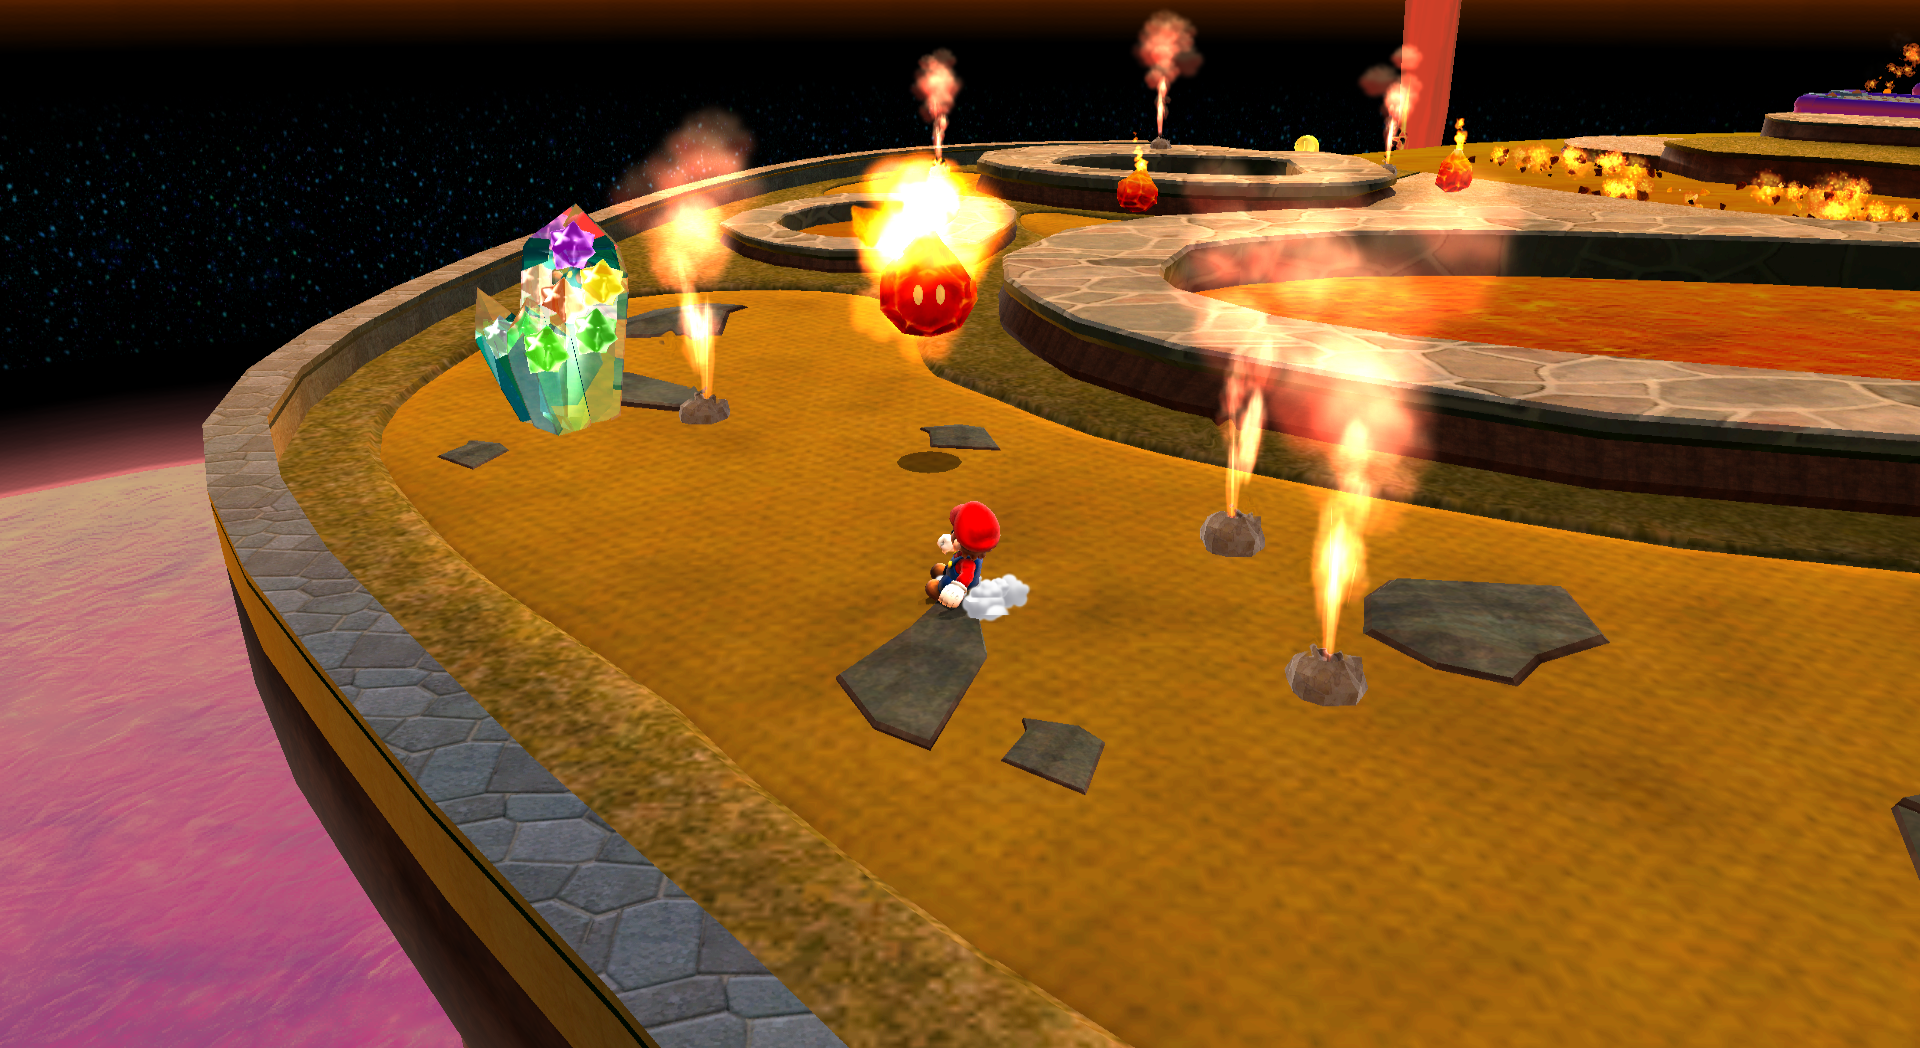 https://www.mariowiki.com/images/b/bf/SMG_Melty_Molten_Starting_Planet.png